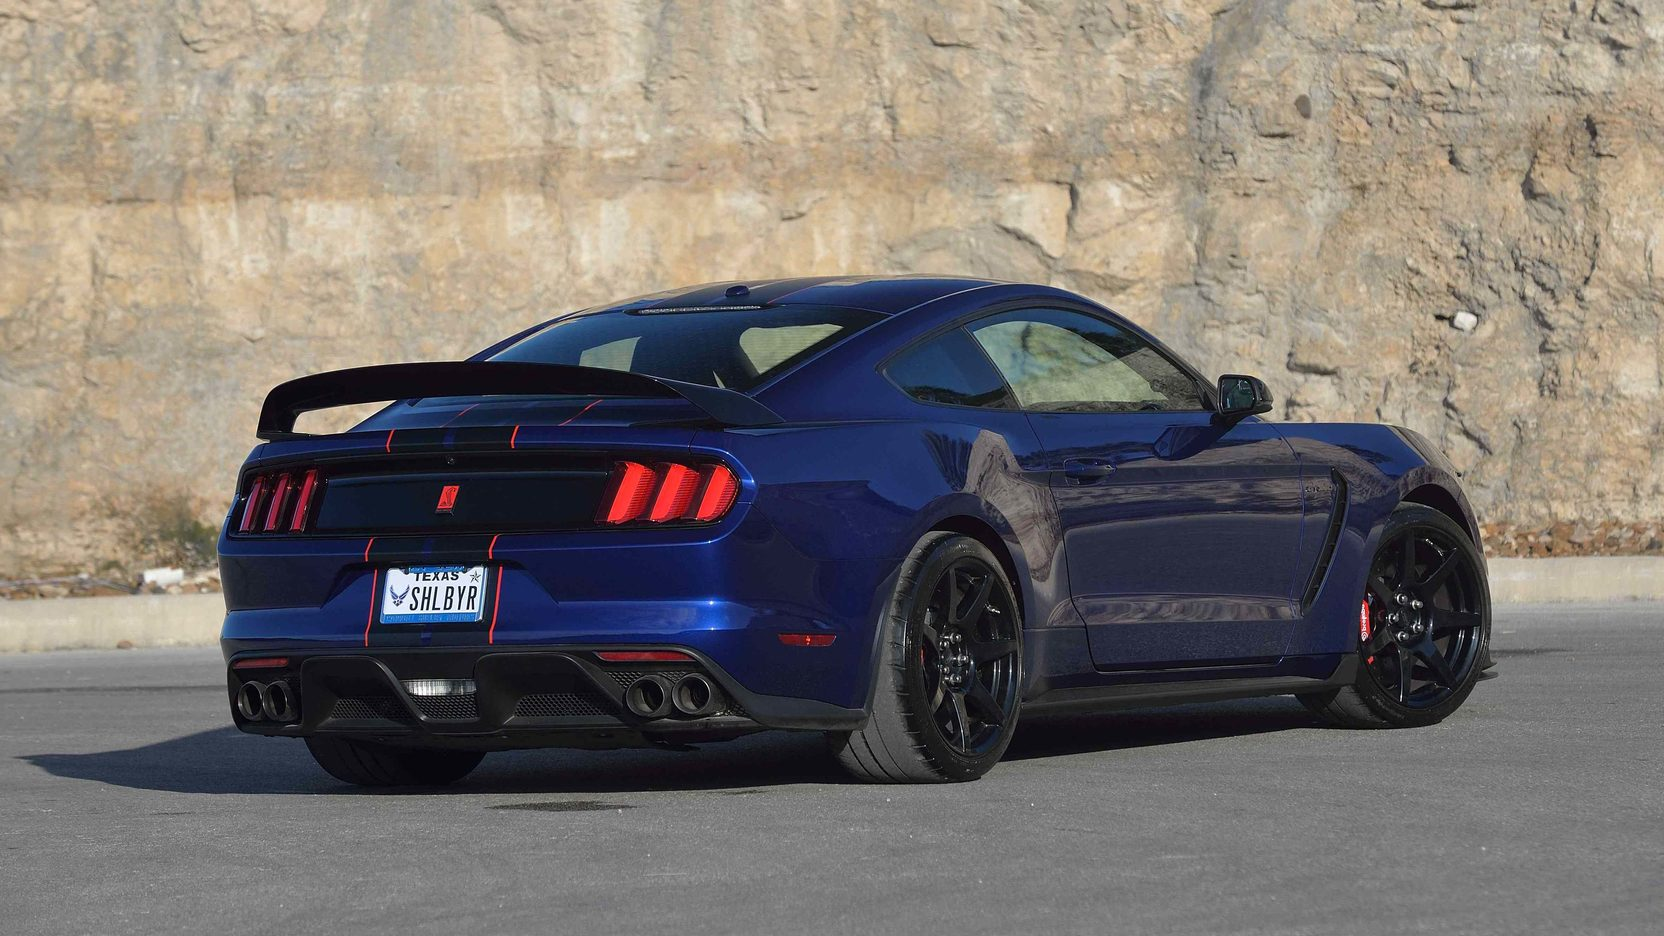 2016 Shelby Gt350 Ford Mustang Blue Interior